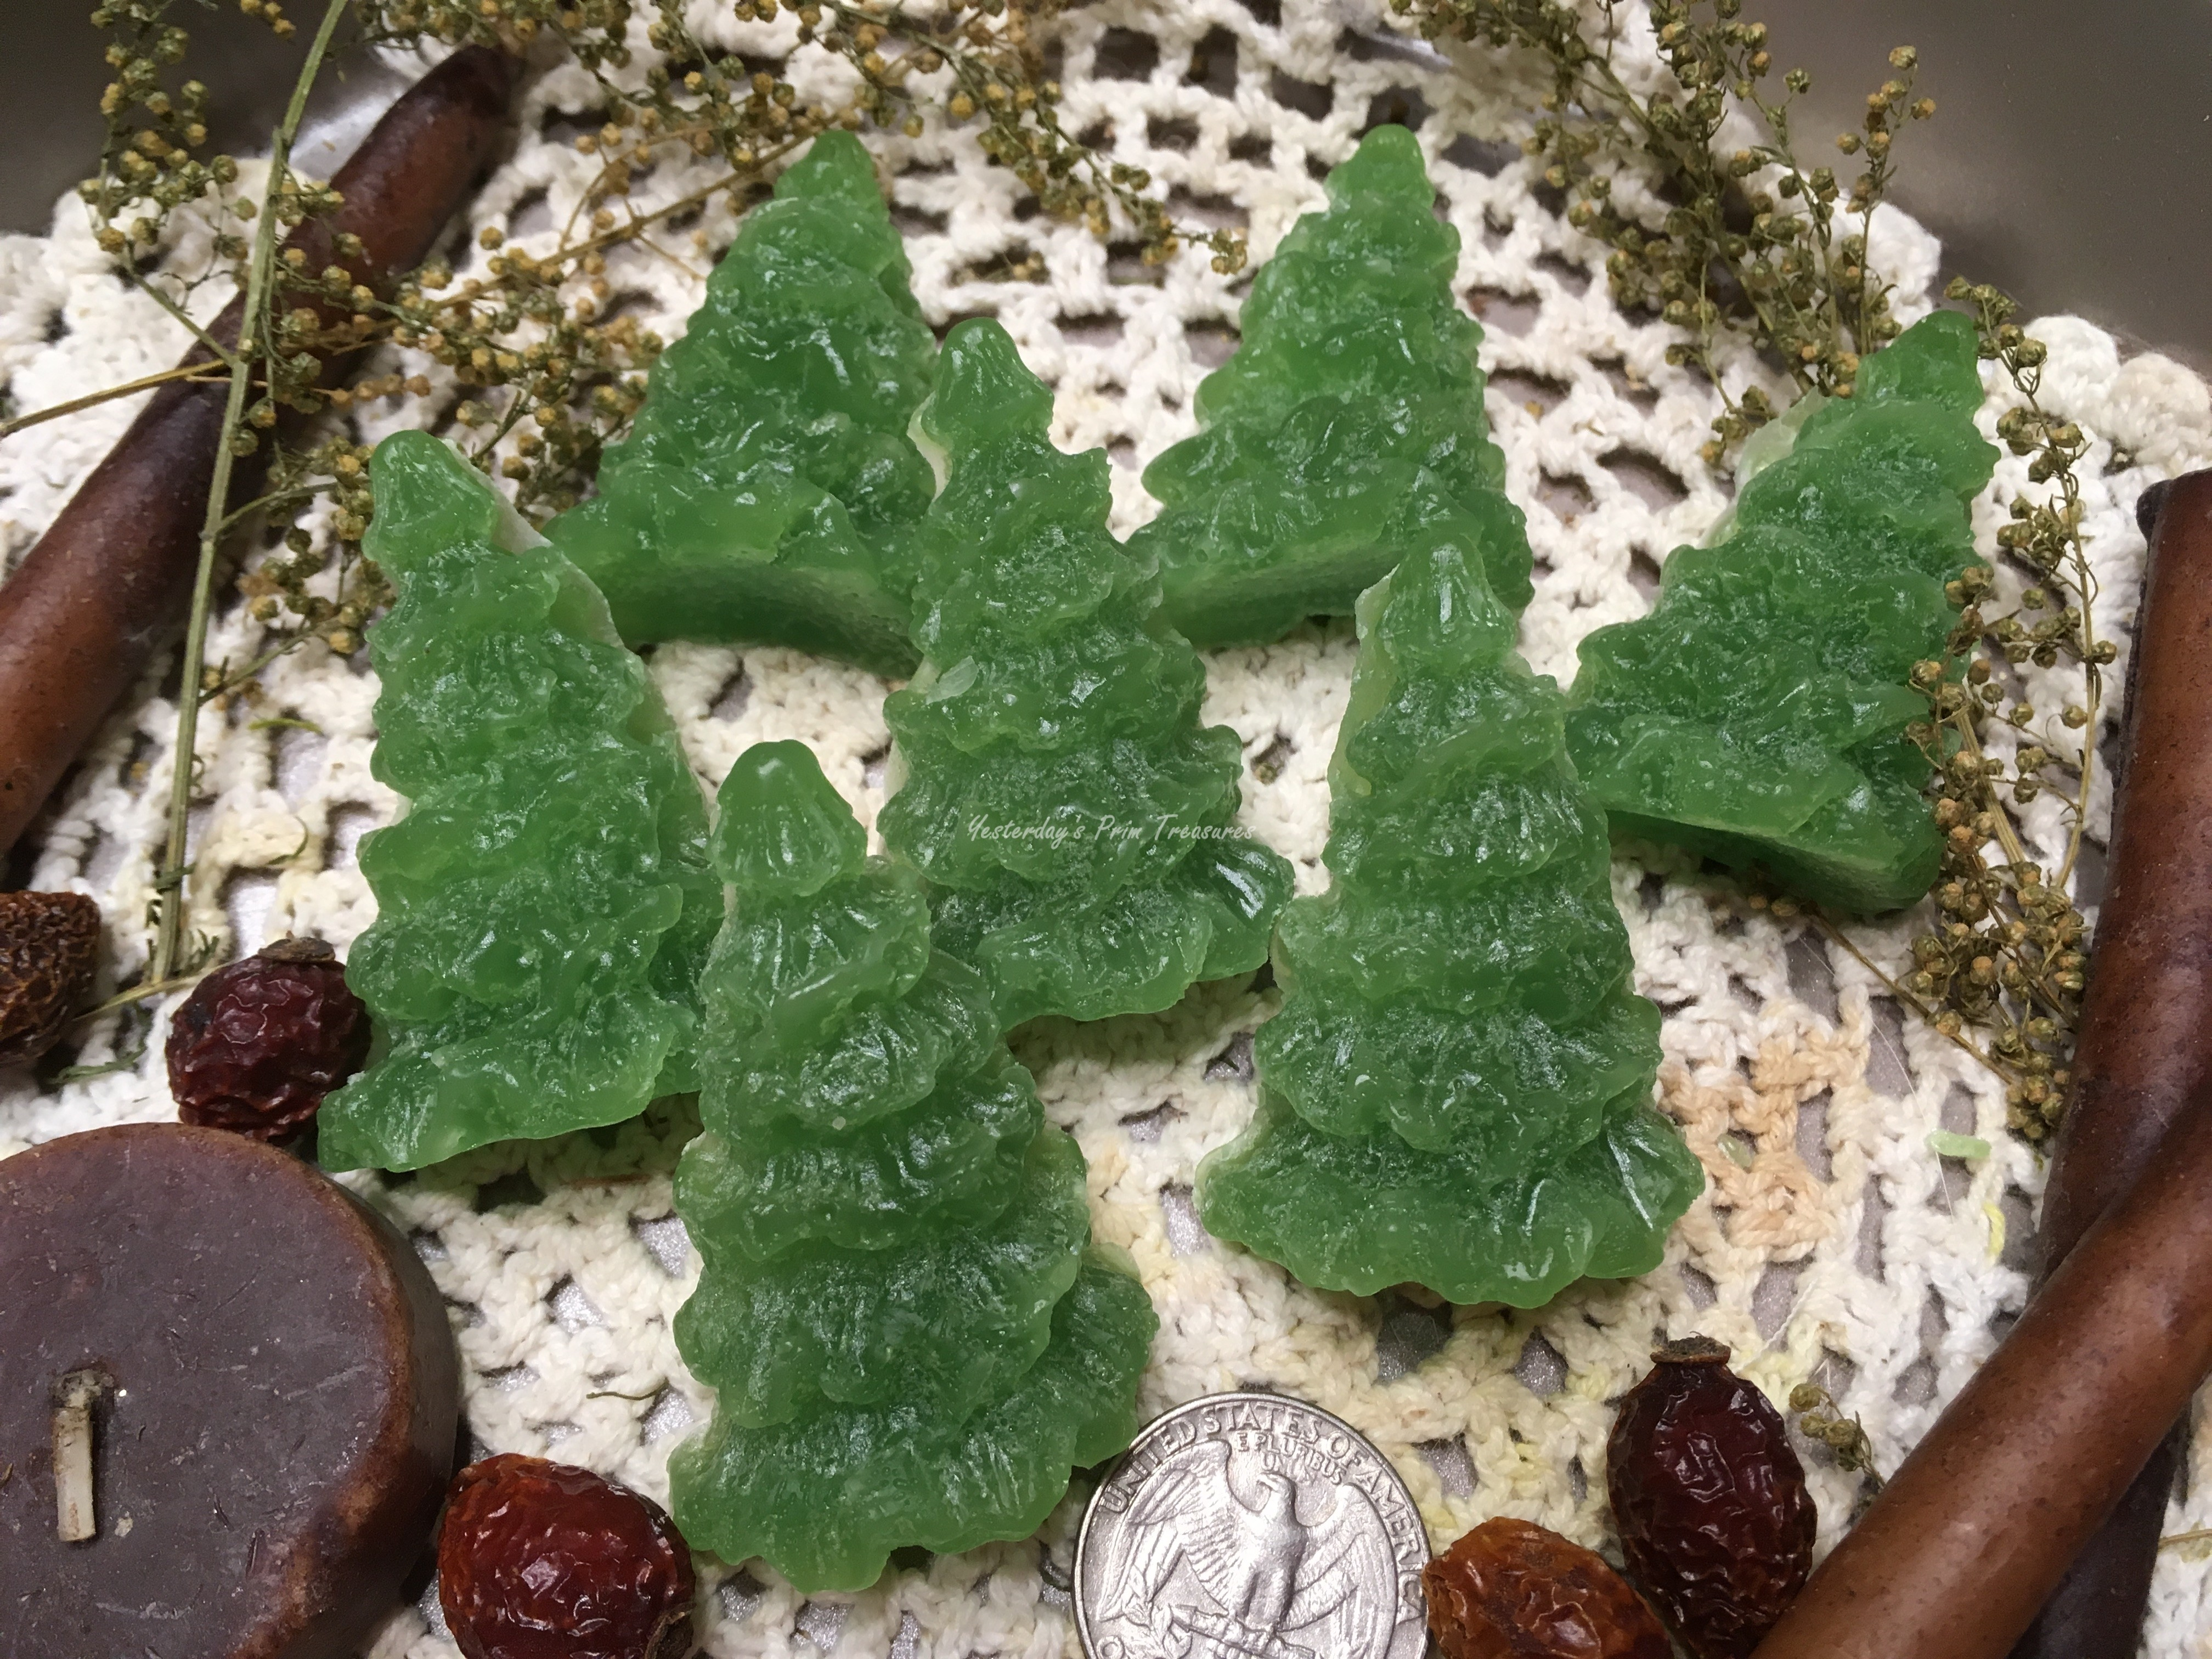 Christmas Tree Fillers.Details About Primitive Handmade Pine Scented Tarts Christmas Tree Embeds Bowl Fillers